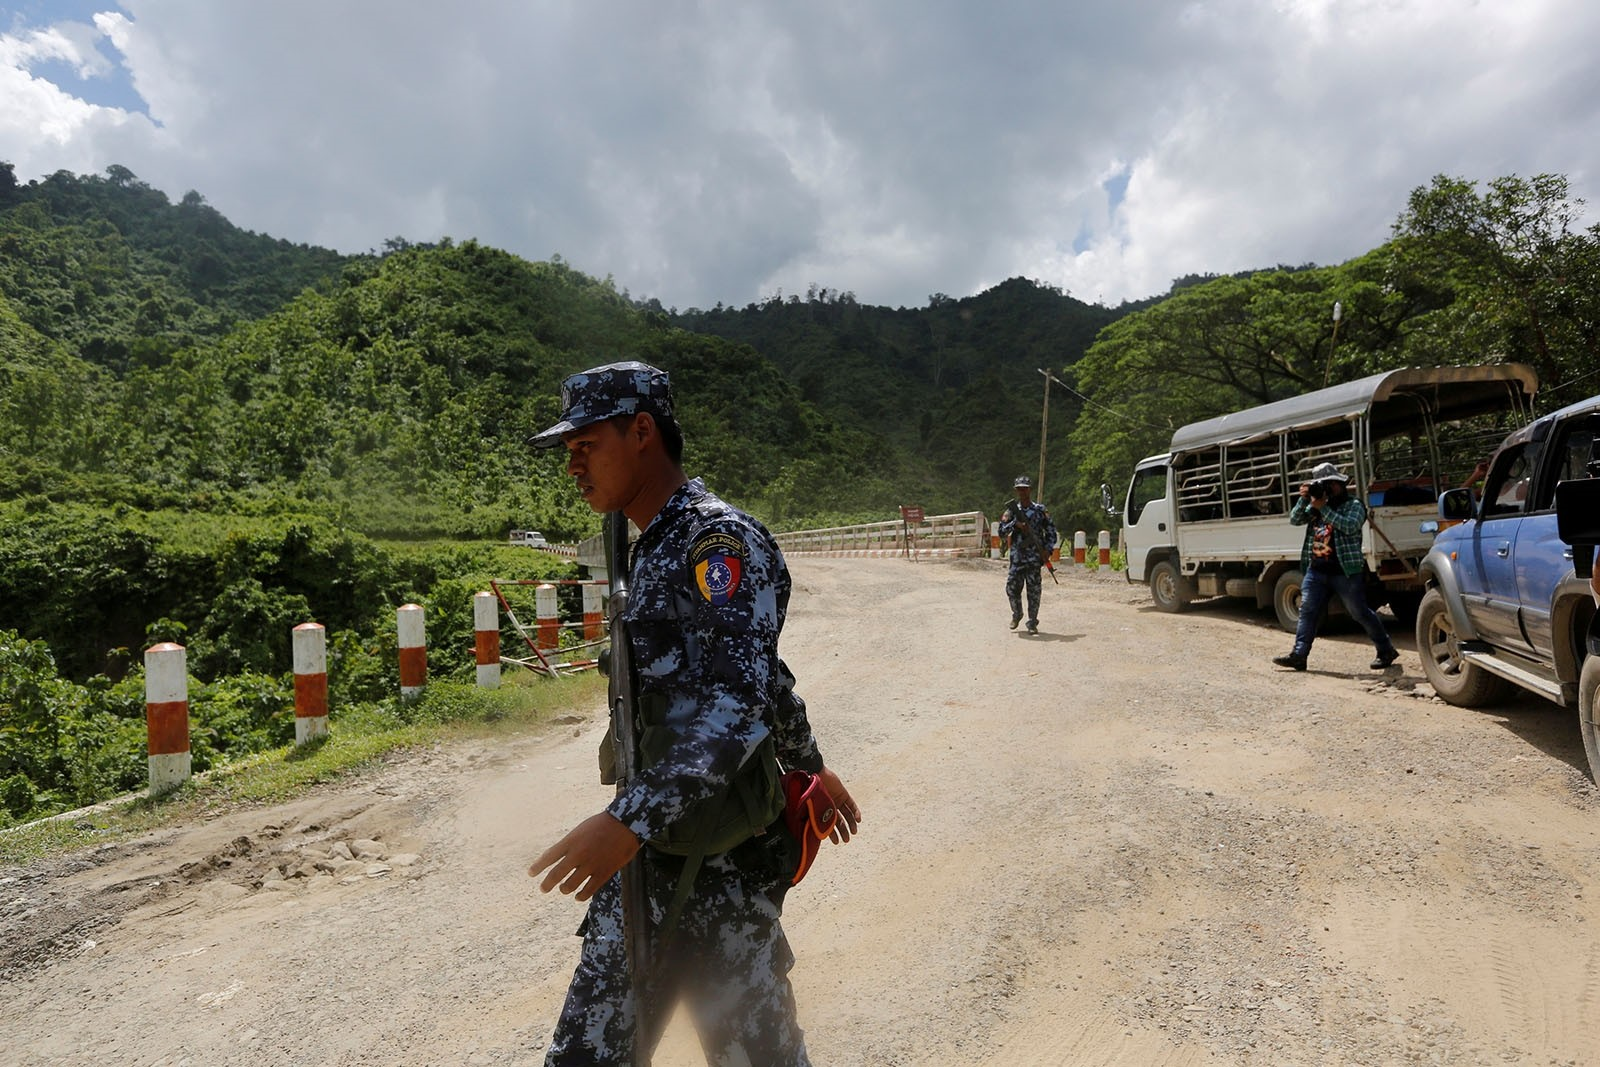 Police guard near a bridge after Arakan Rohingya Salvation Army (ARSA) attacked, in Buthidaung, Myanmar August 28, 2017.